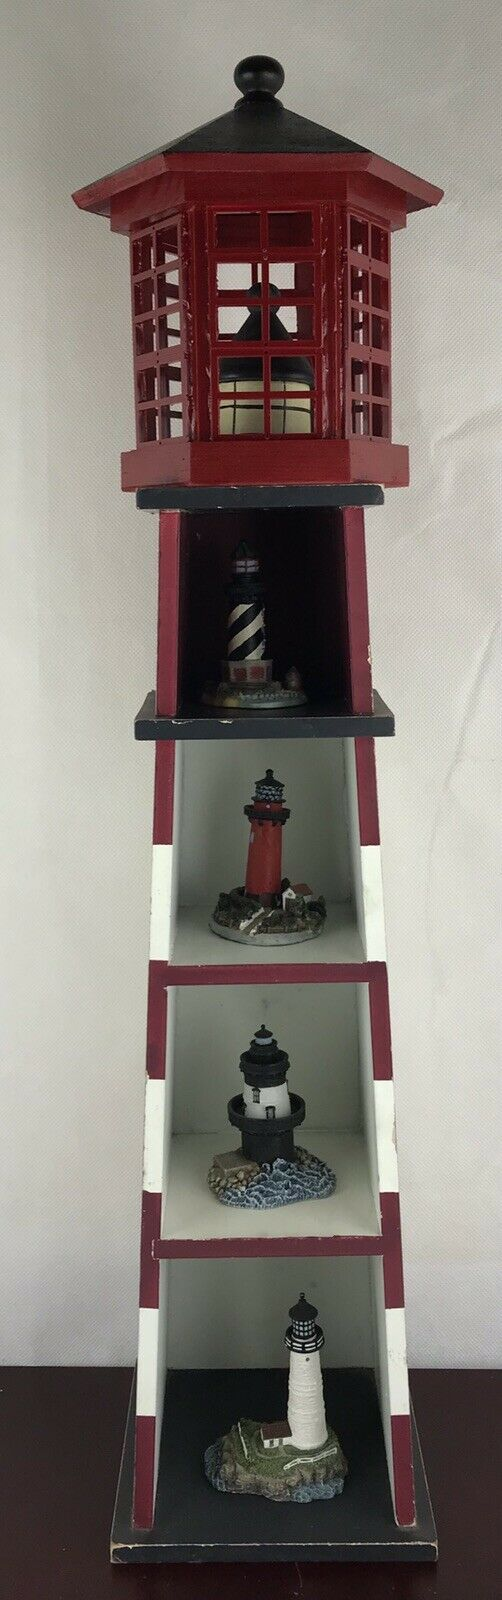 Vintage House Light Wooden Shelf Decor With 4 Different Little Light Houses